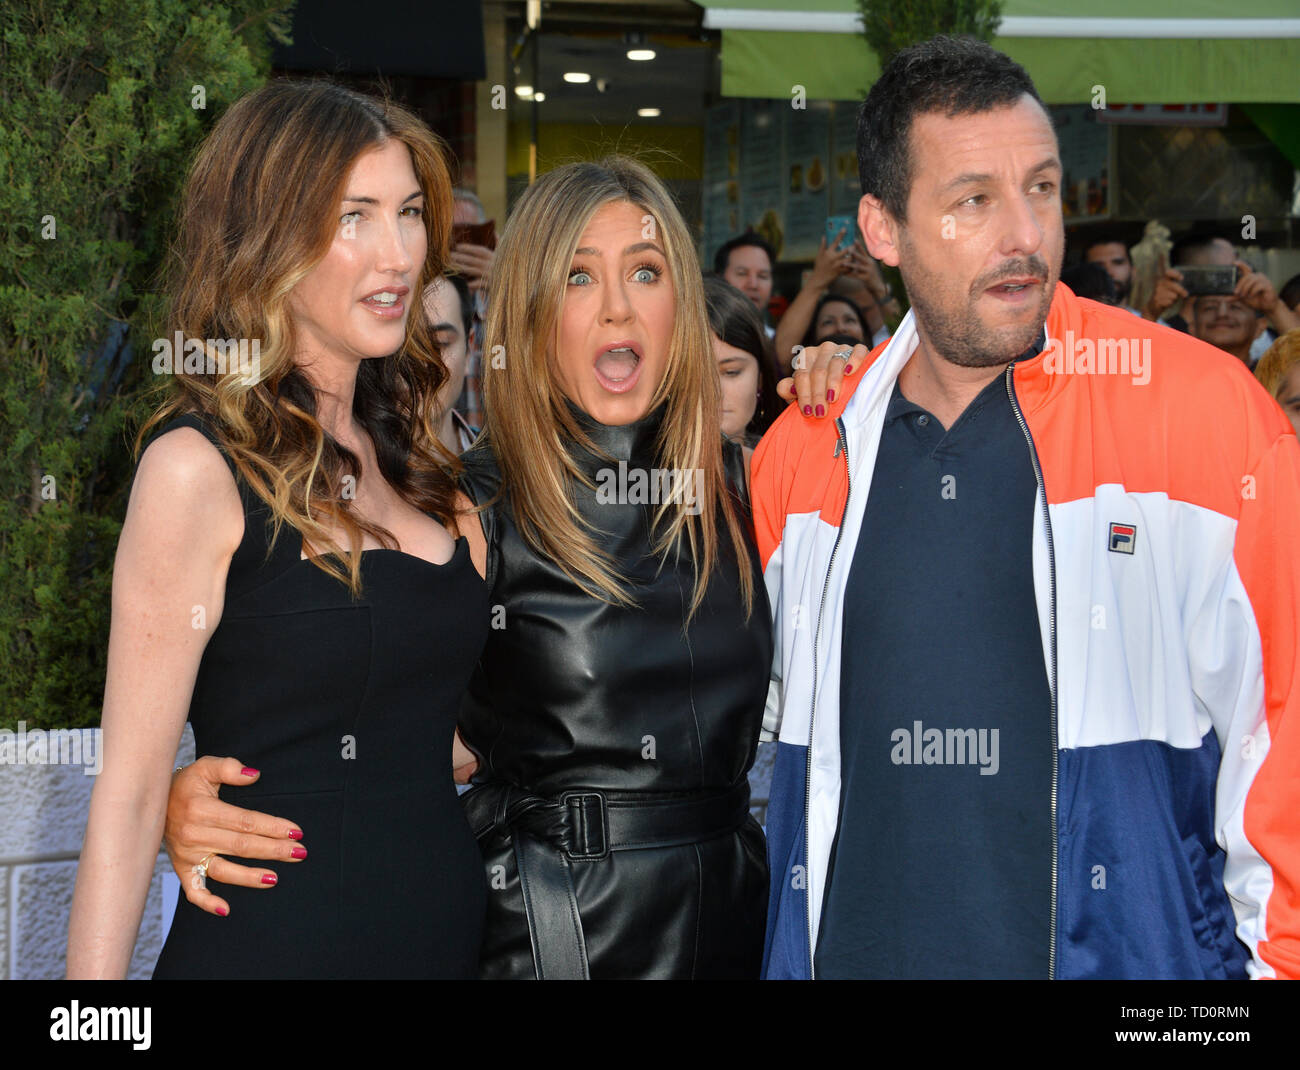 Jackie Sandler Stock Photos & Jackie Sandler Stock Images - Alamy